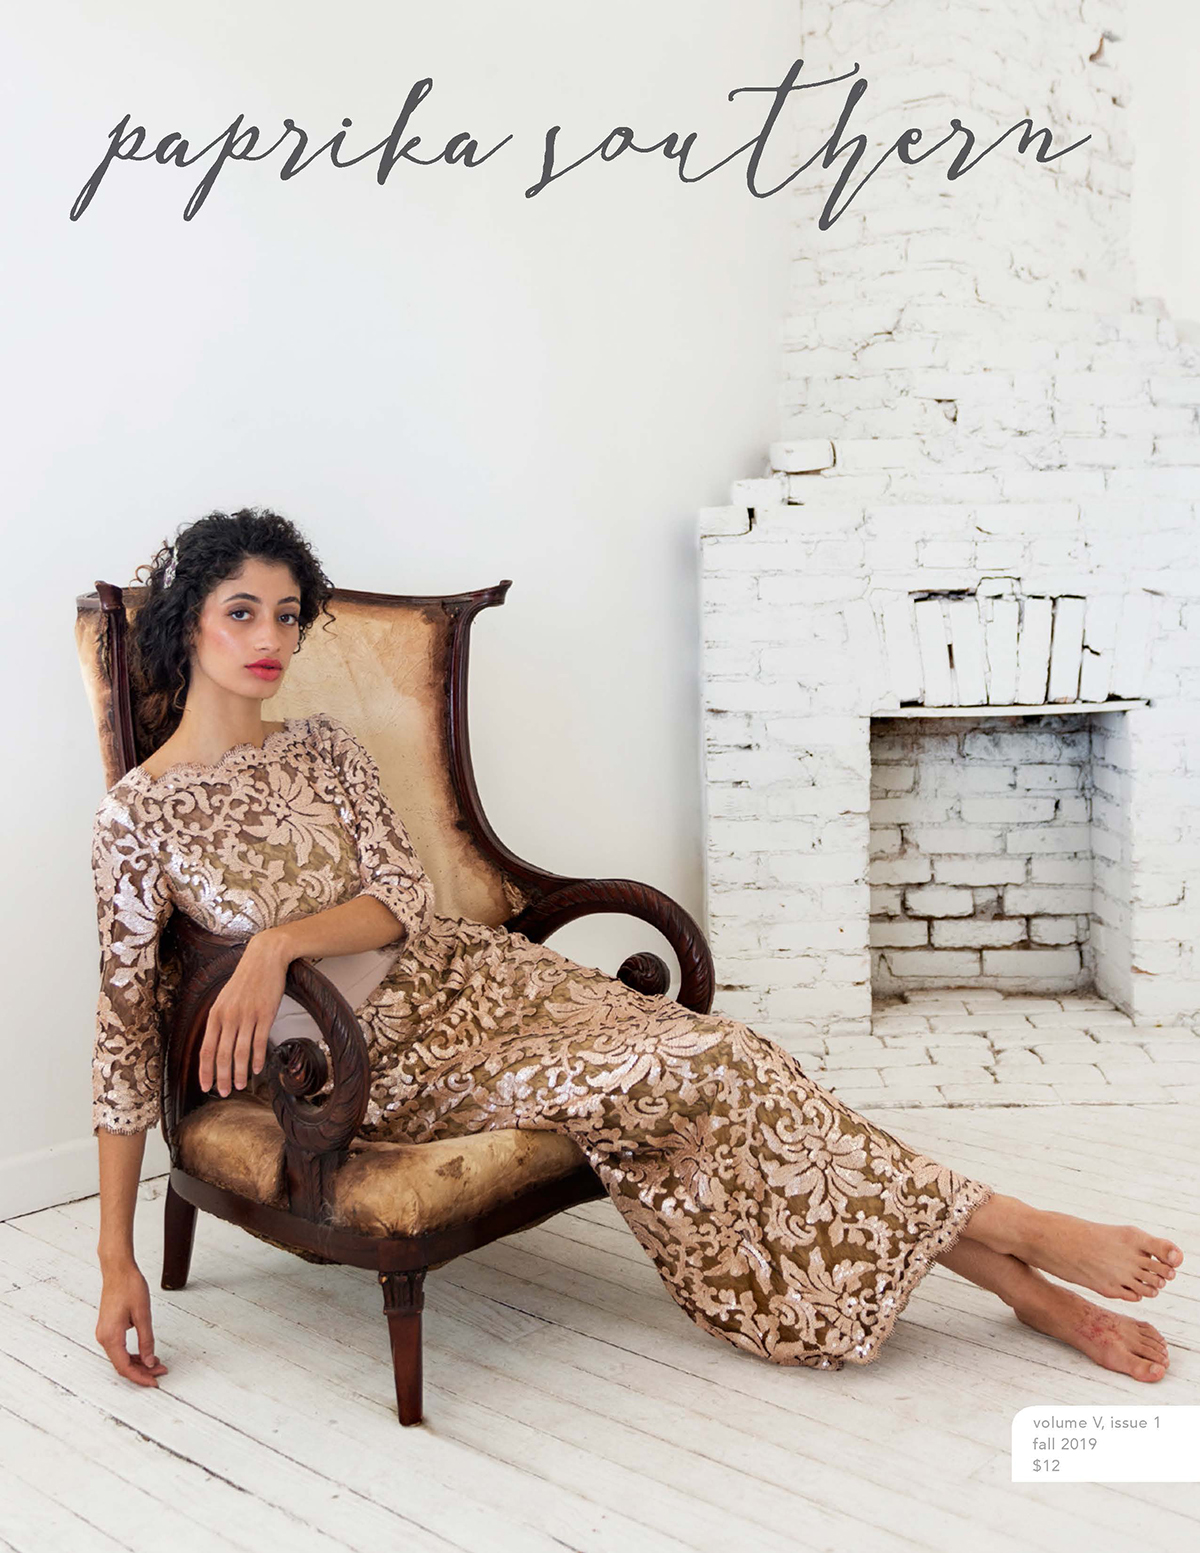 Paprika Southern Fall 2019 | Inspiration for Creative and Intentional Living | Small Batch Print Publication | Women's Lifestyle | Women's Fashion | Art and Lifestyle Magazine | Southern Lifestyle | Makers | Artists | Fashion | Home | Recipes